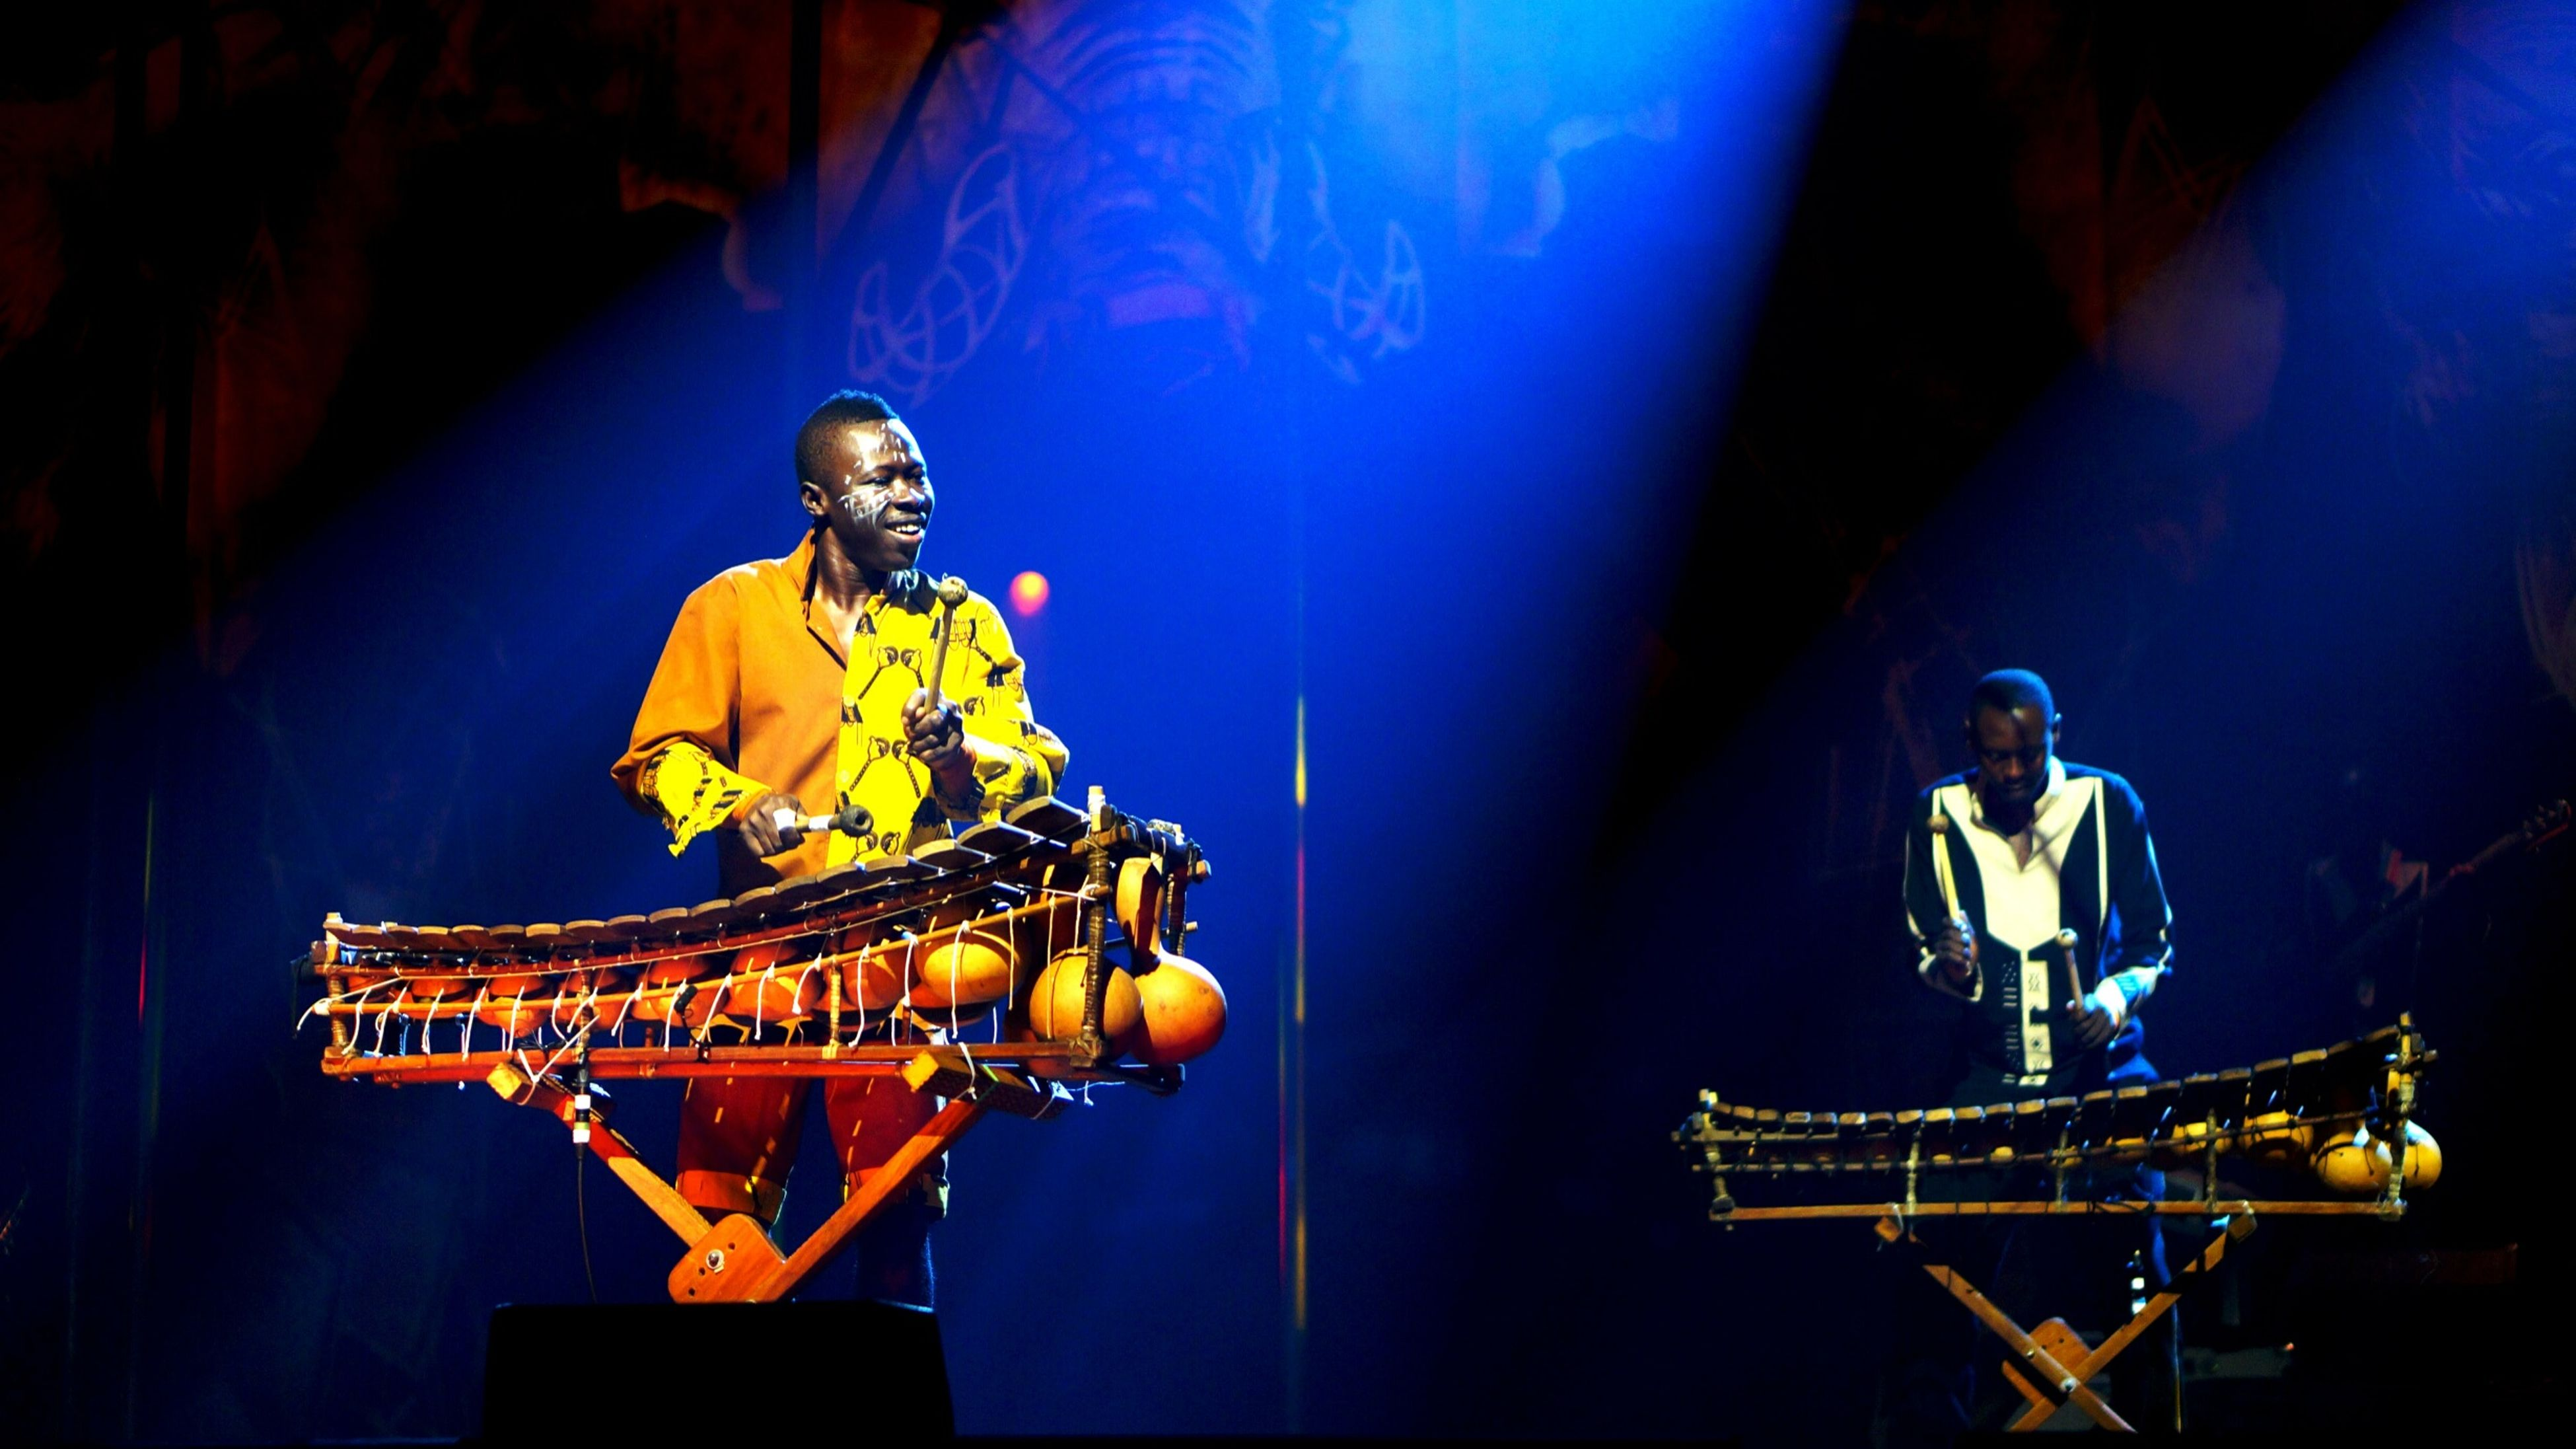 NOT Xylophone -> Balafon Percussion Percussionist Musician Live Music Spectacle